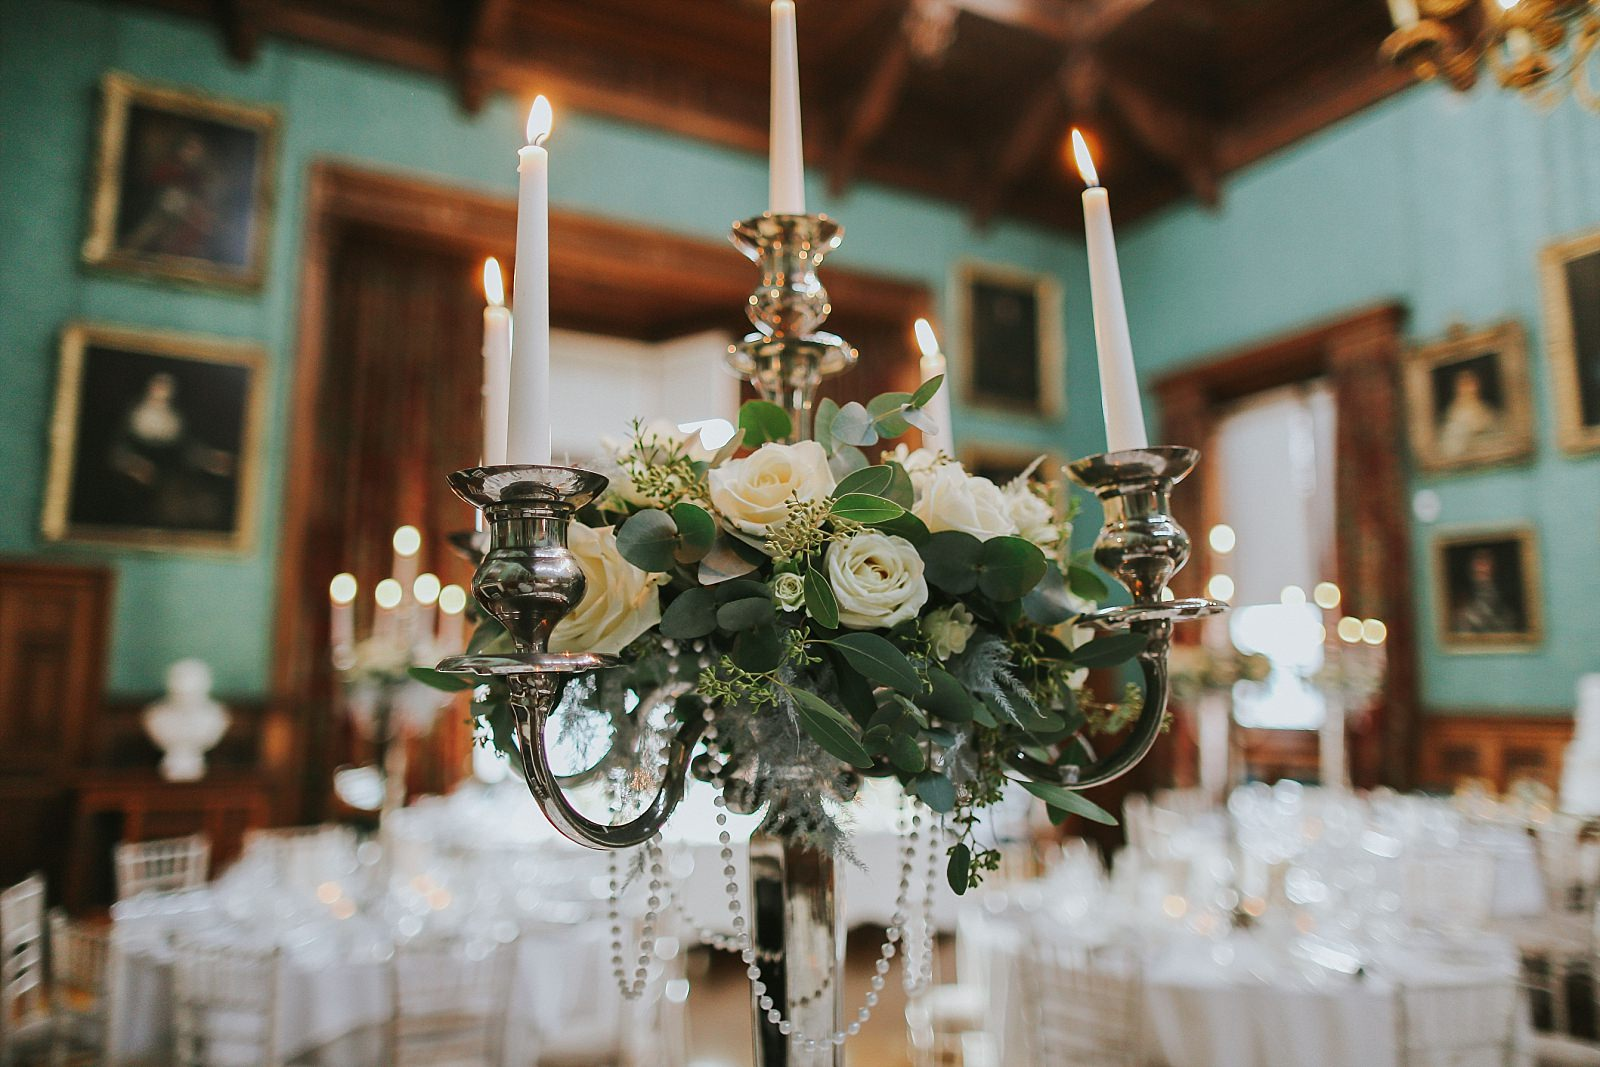 candelabra decorated with white roses and winter ferns